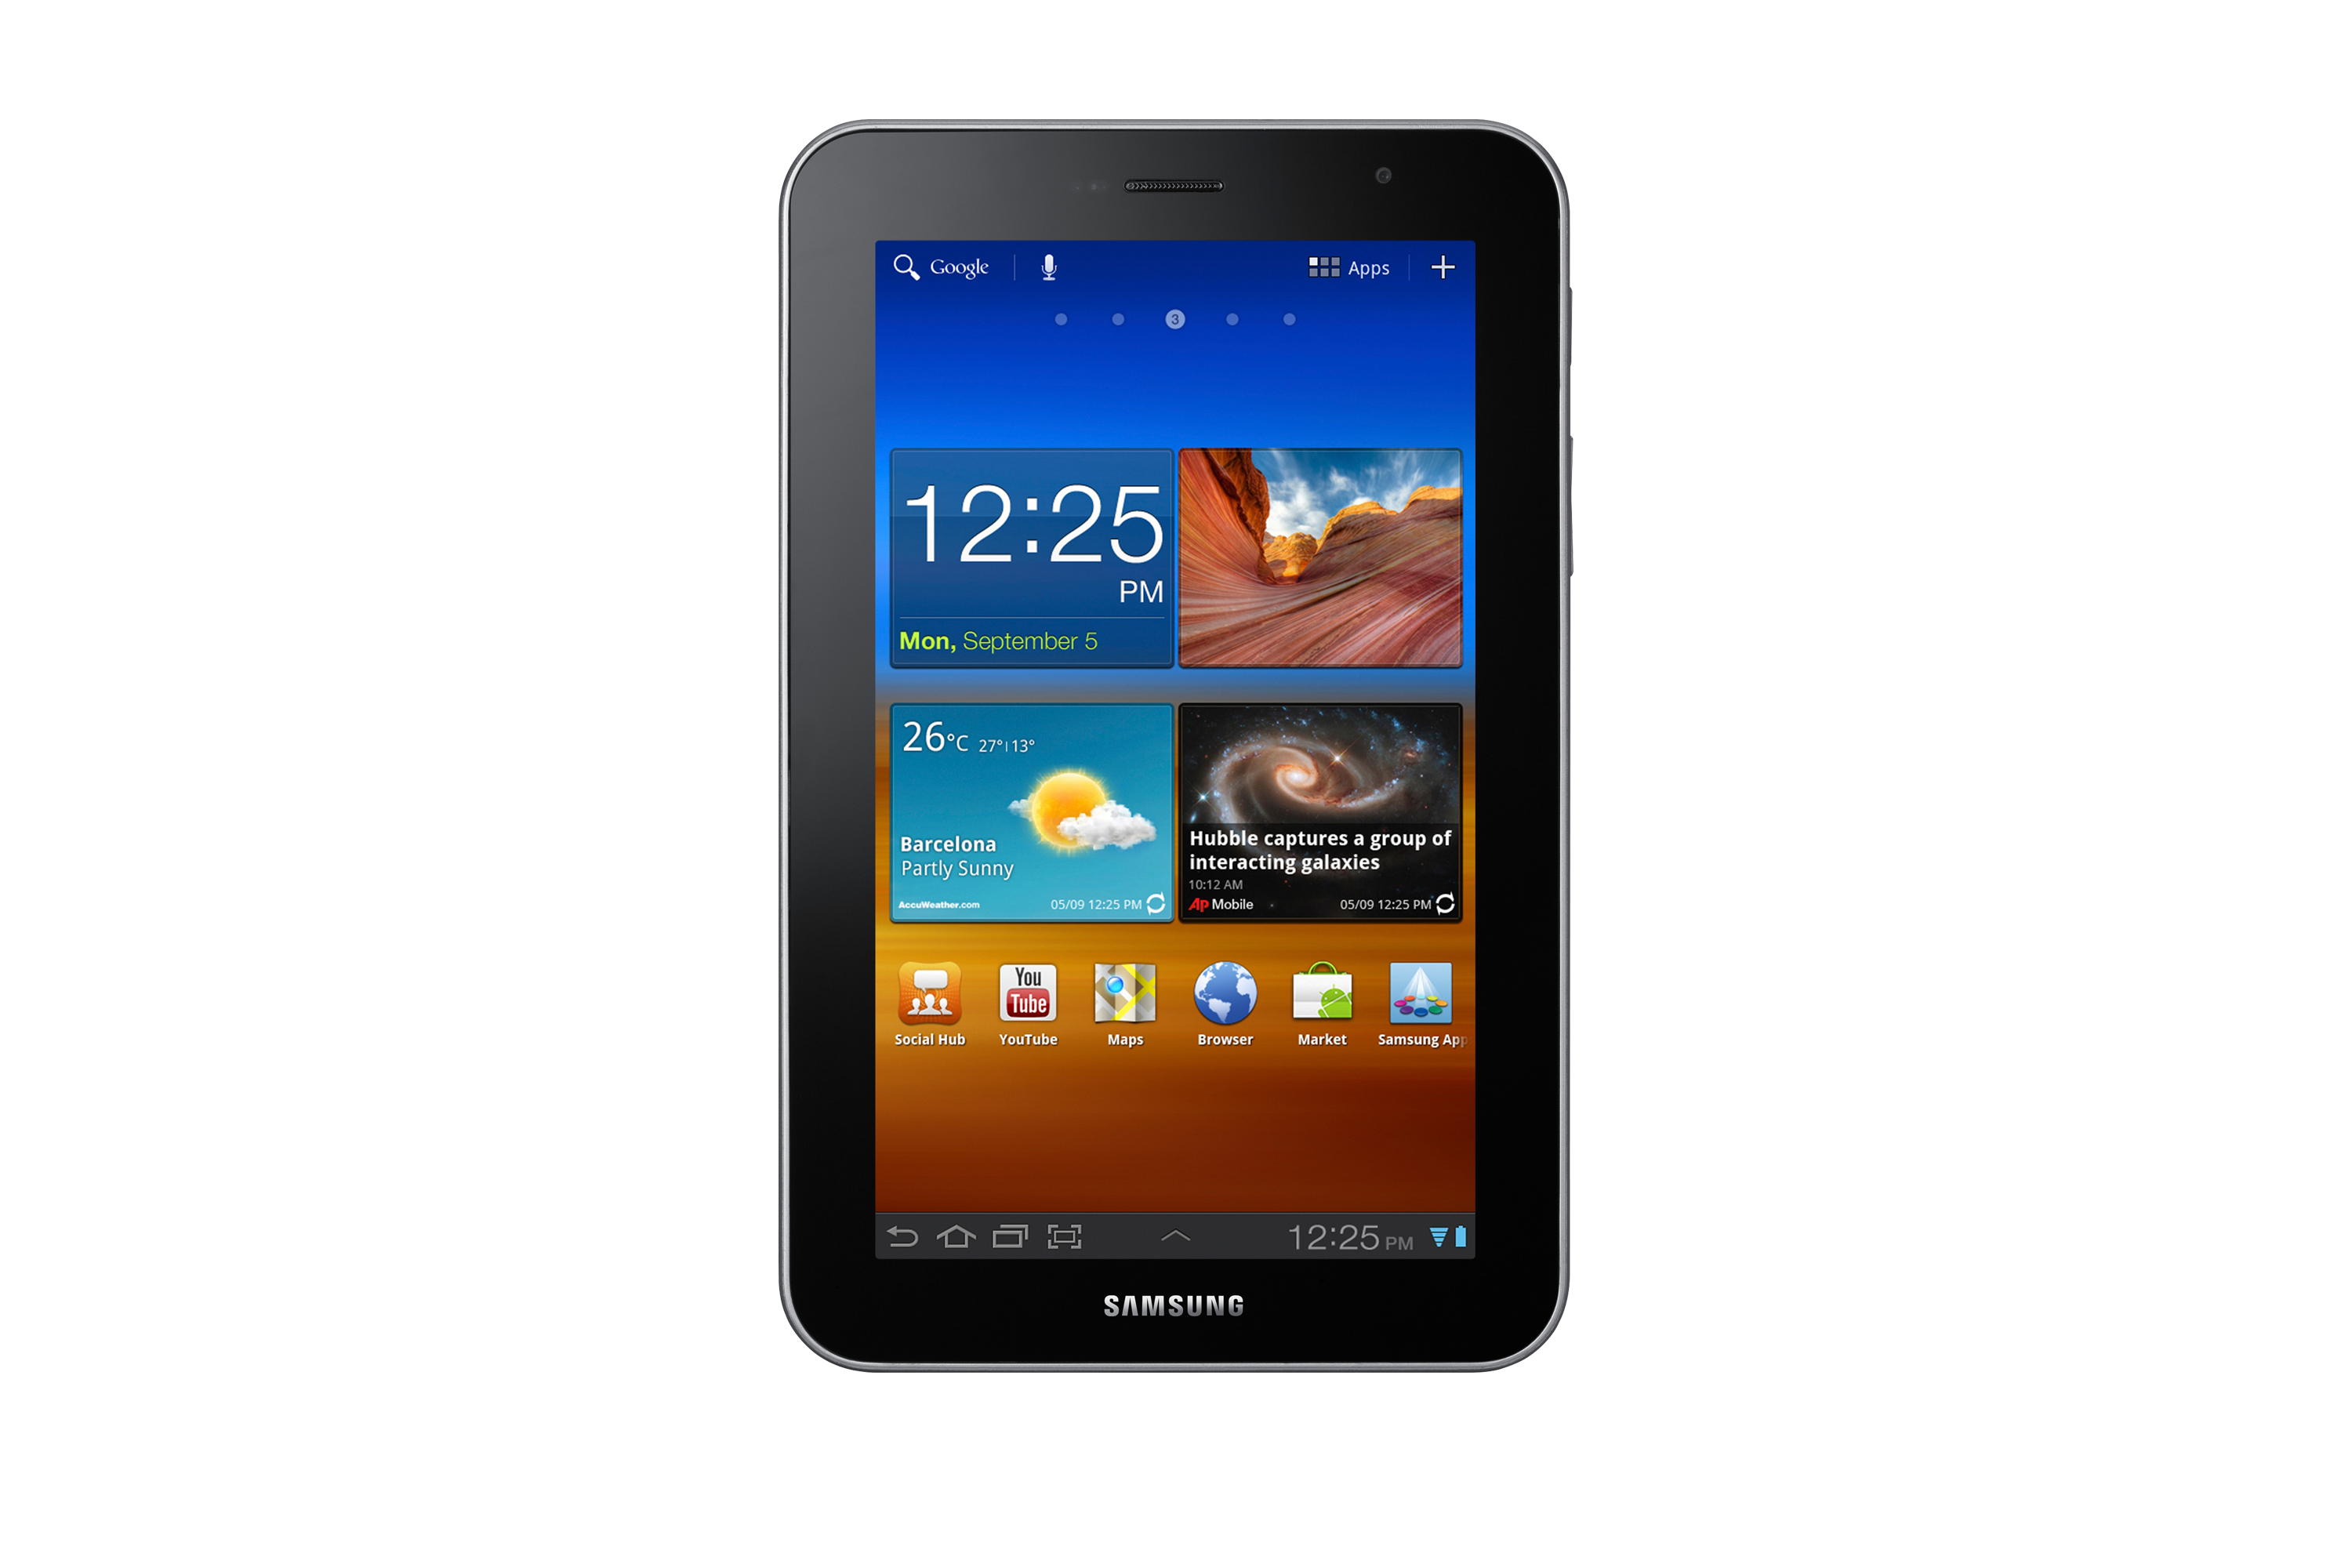 GT-P6210 Galaxy Tab 7.0 Plus (Wi-Fi)